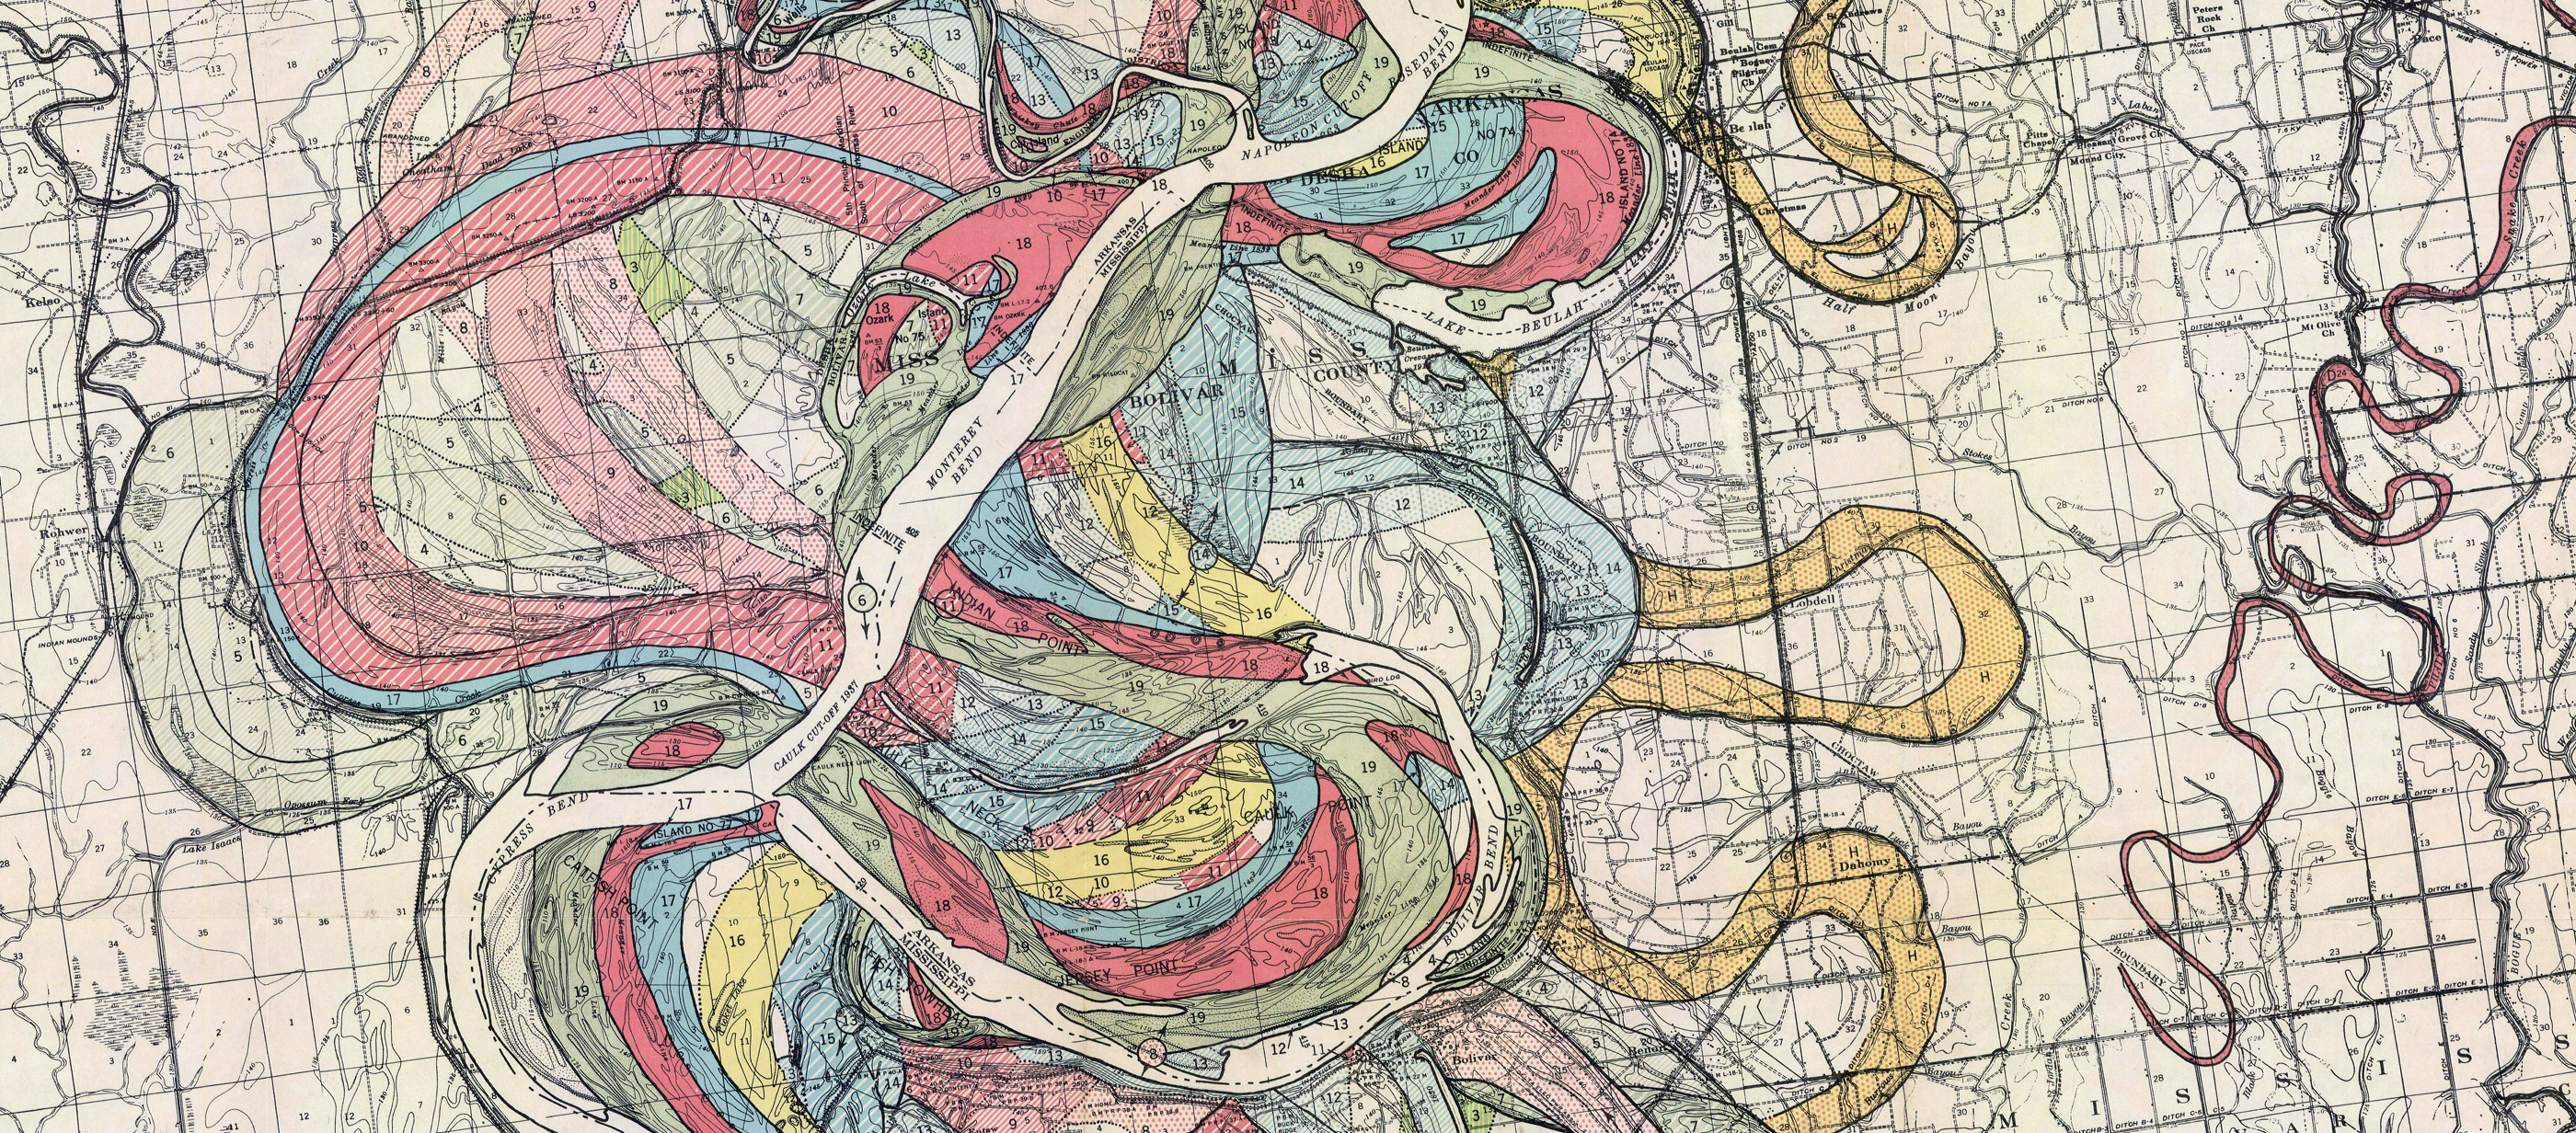 Colorful engraving of the different paths of the Mississippi River.